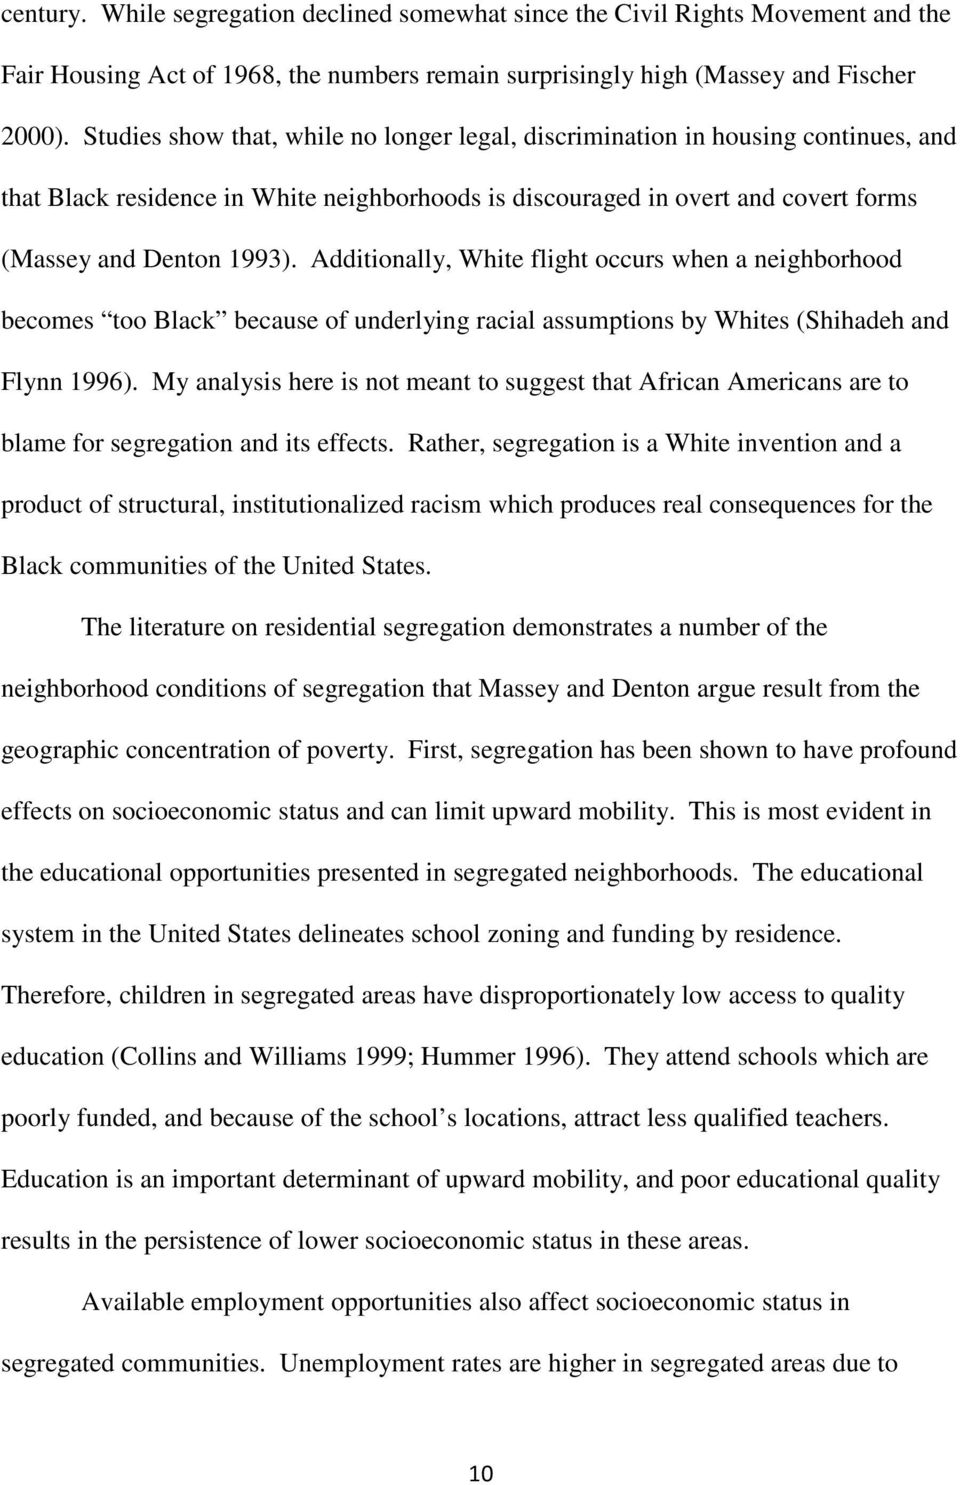 Additionally, White flight occurs when a neighborhood becomes too Black because of underlying racial assumptions by Whites (Shihadeh and Flynn 1996).